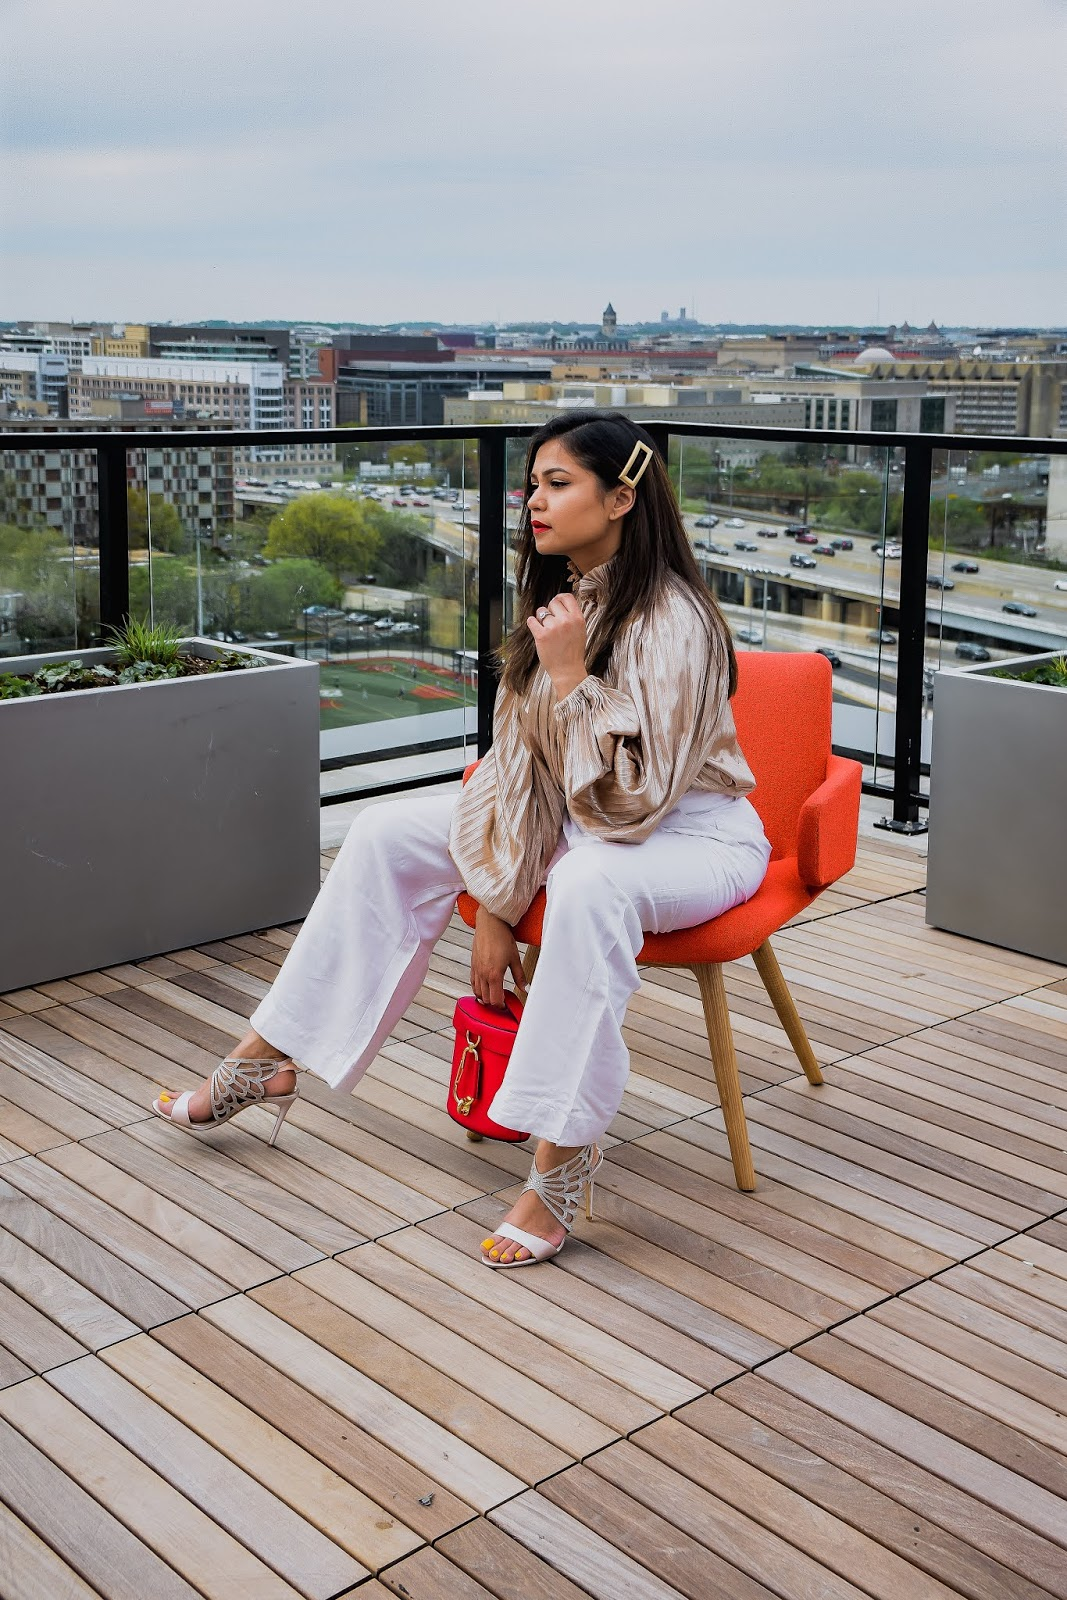 gold blouse, white jeans, party look, weddign guest, ootd, street style, dc blogger, saumya shiohare, myriad musings , rent the runway blouse, whute pants outit, red zac posen bag